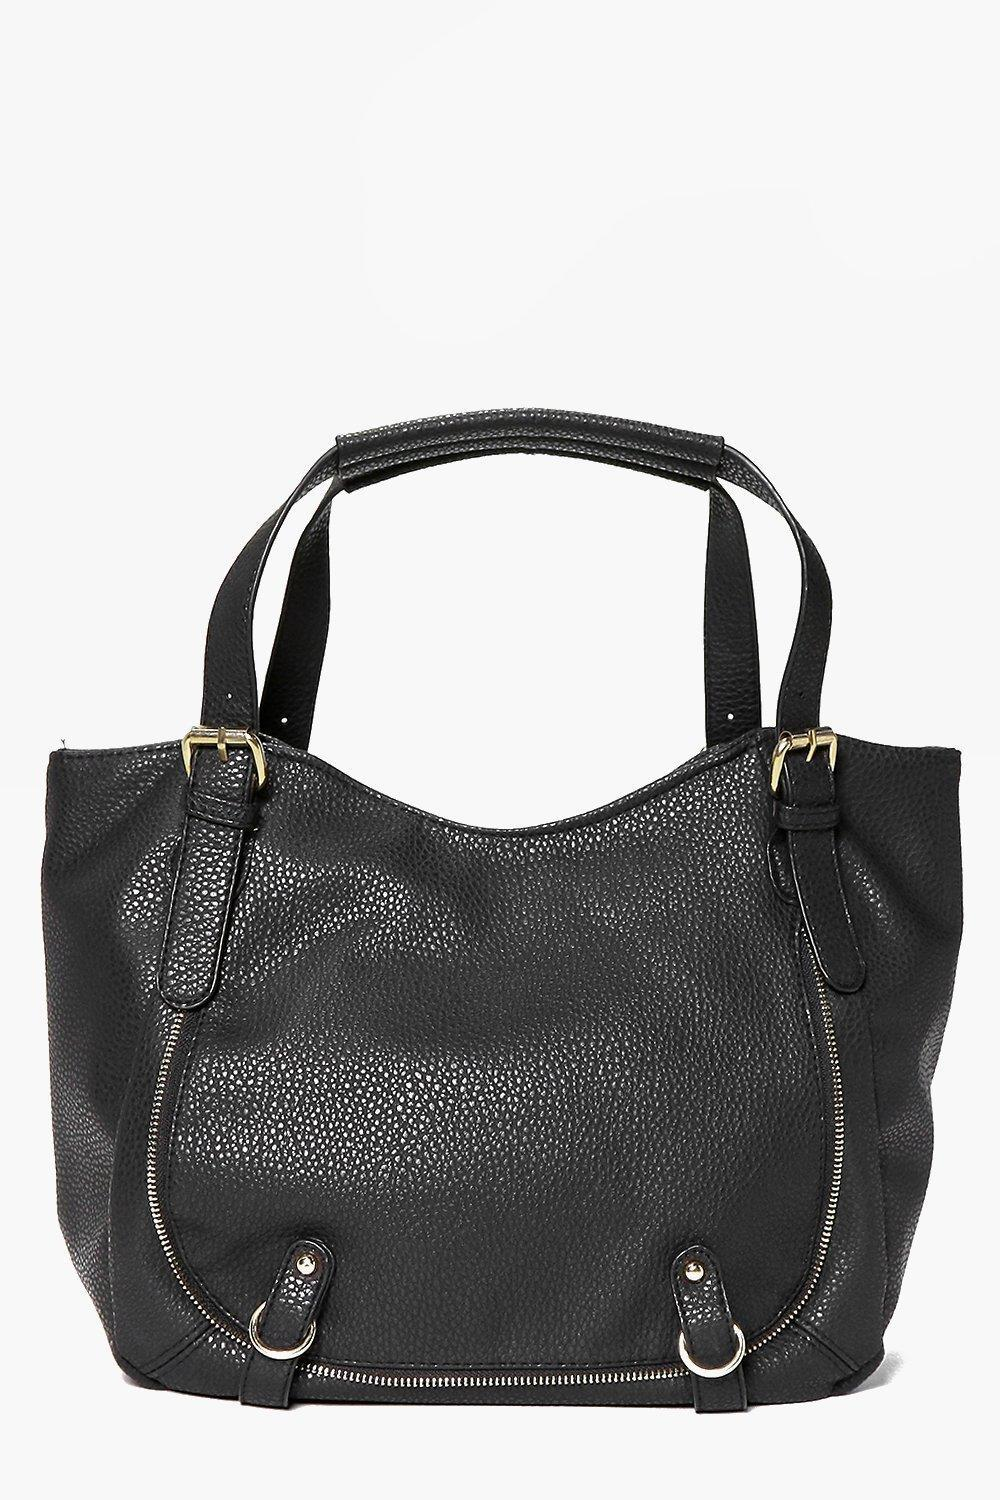 Pocket Detail Slouch Day Bag Black - predominant colour: black; occasions: casual, creative work; type of pattern: standard; style: tote; length: handle; size: standard; material: faux leather; pattern: plain; finish: plain; season: s/s 2016; wardrobe: investment